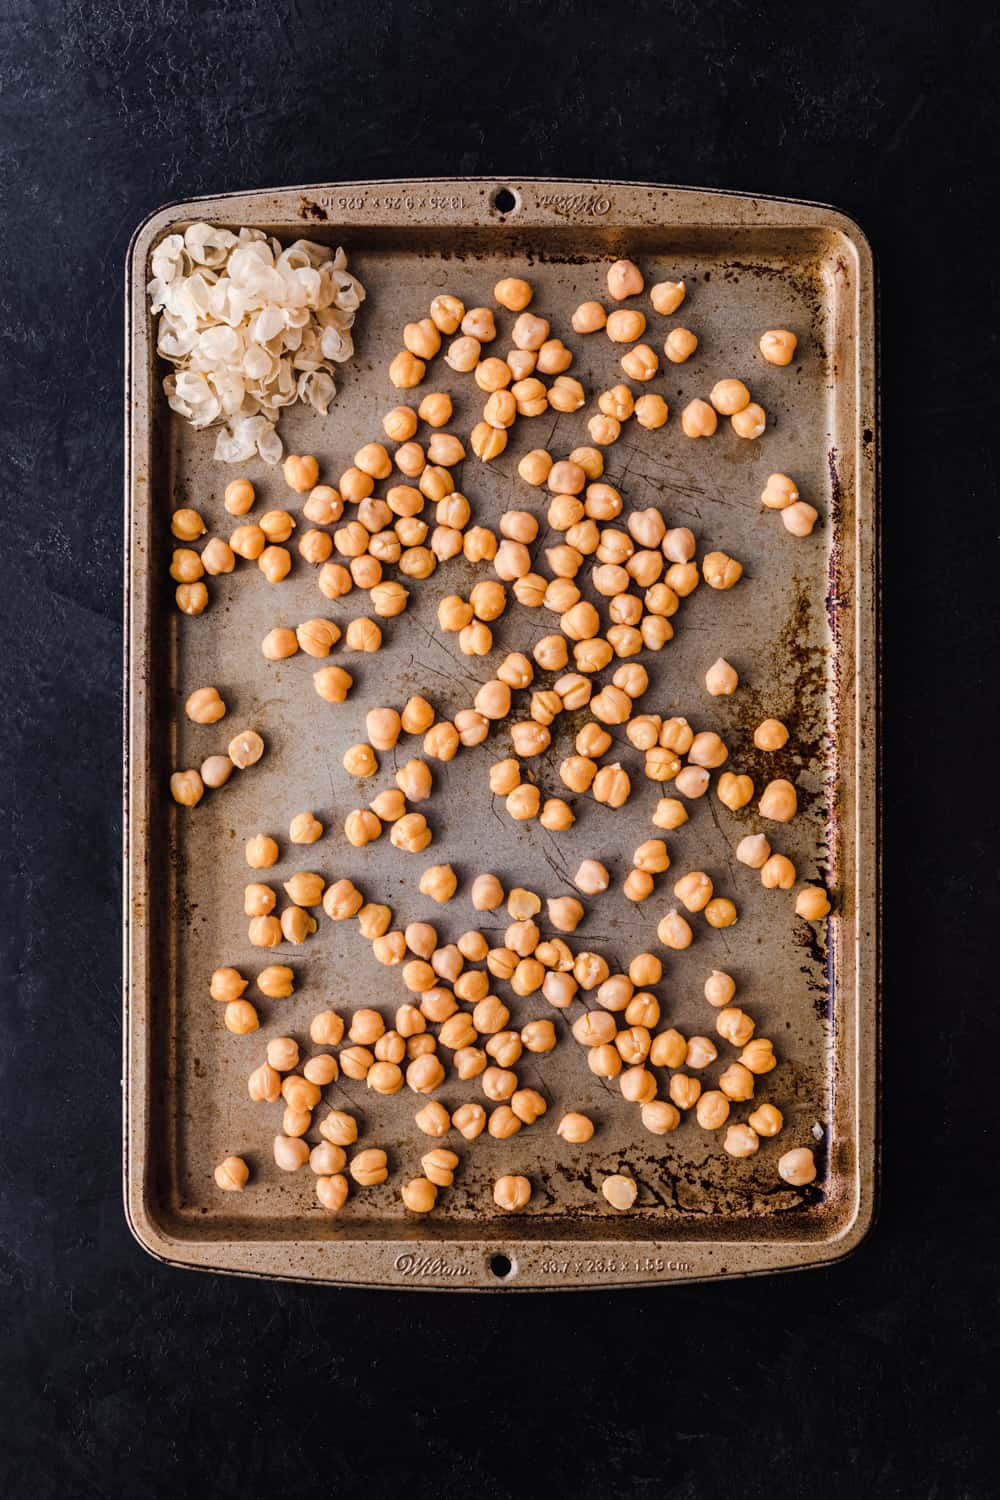 chickpeas on a sheet pan, with their skins together in a clump so you can see what the skins look like